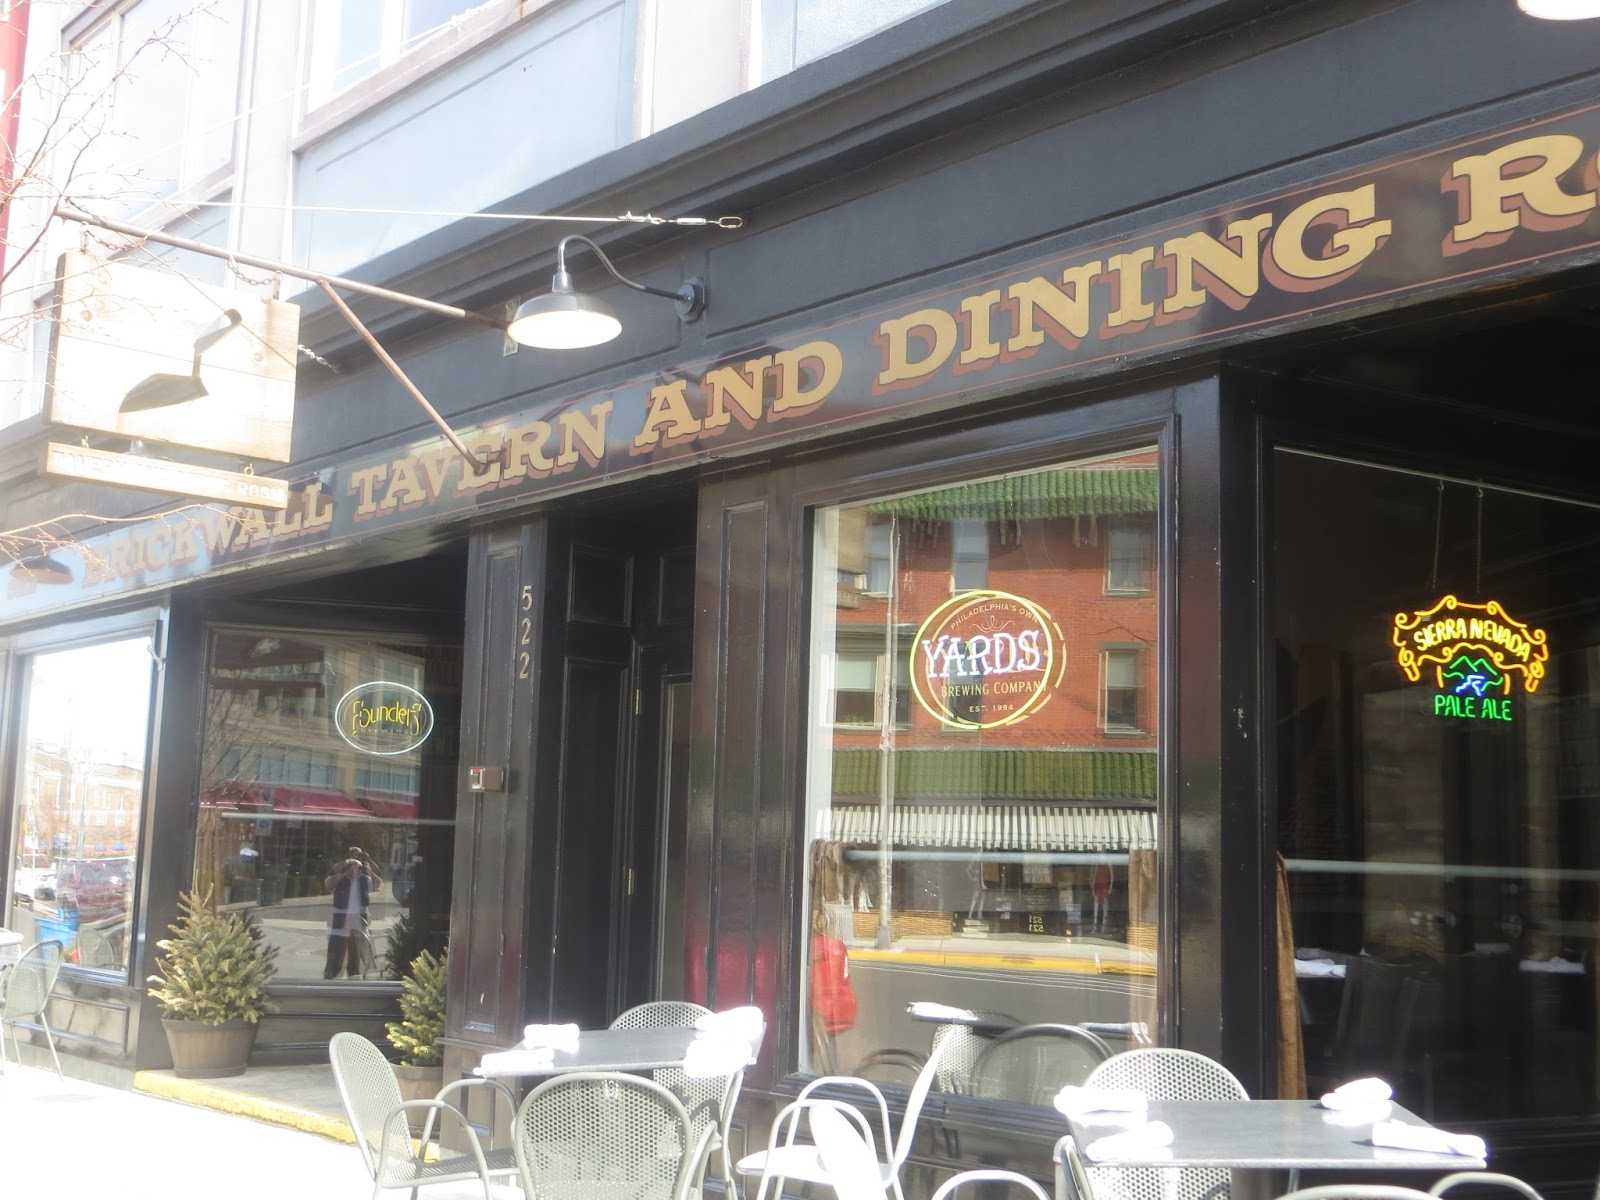 asbury park chat rooms The best breakfast , lunch, brunch restaurant in asbury park new jersey open 7 days a week.